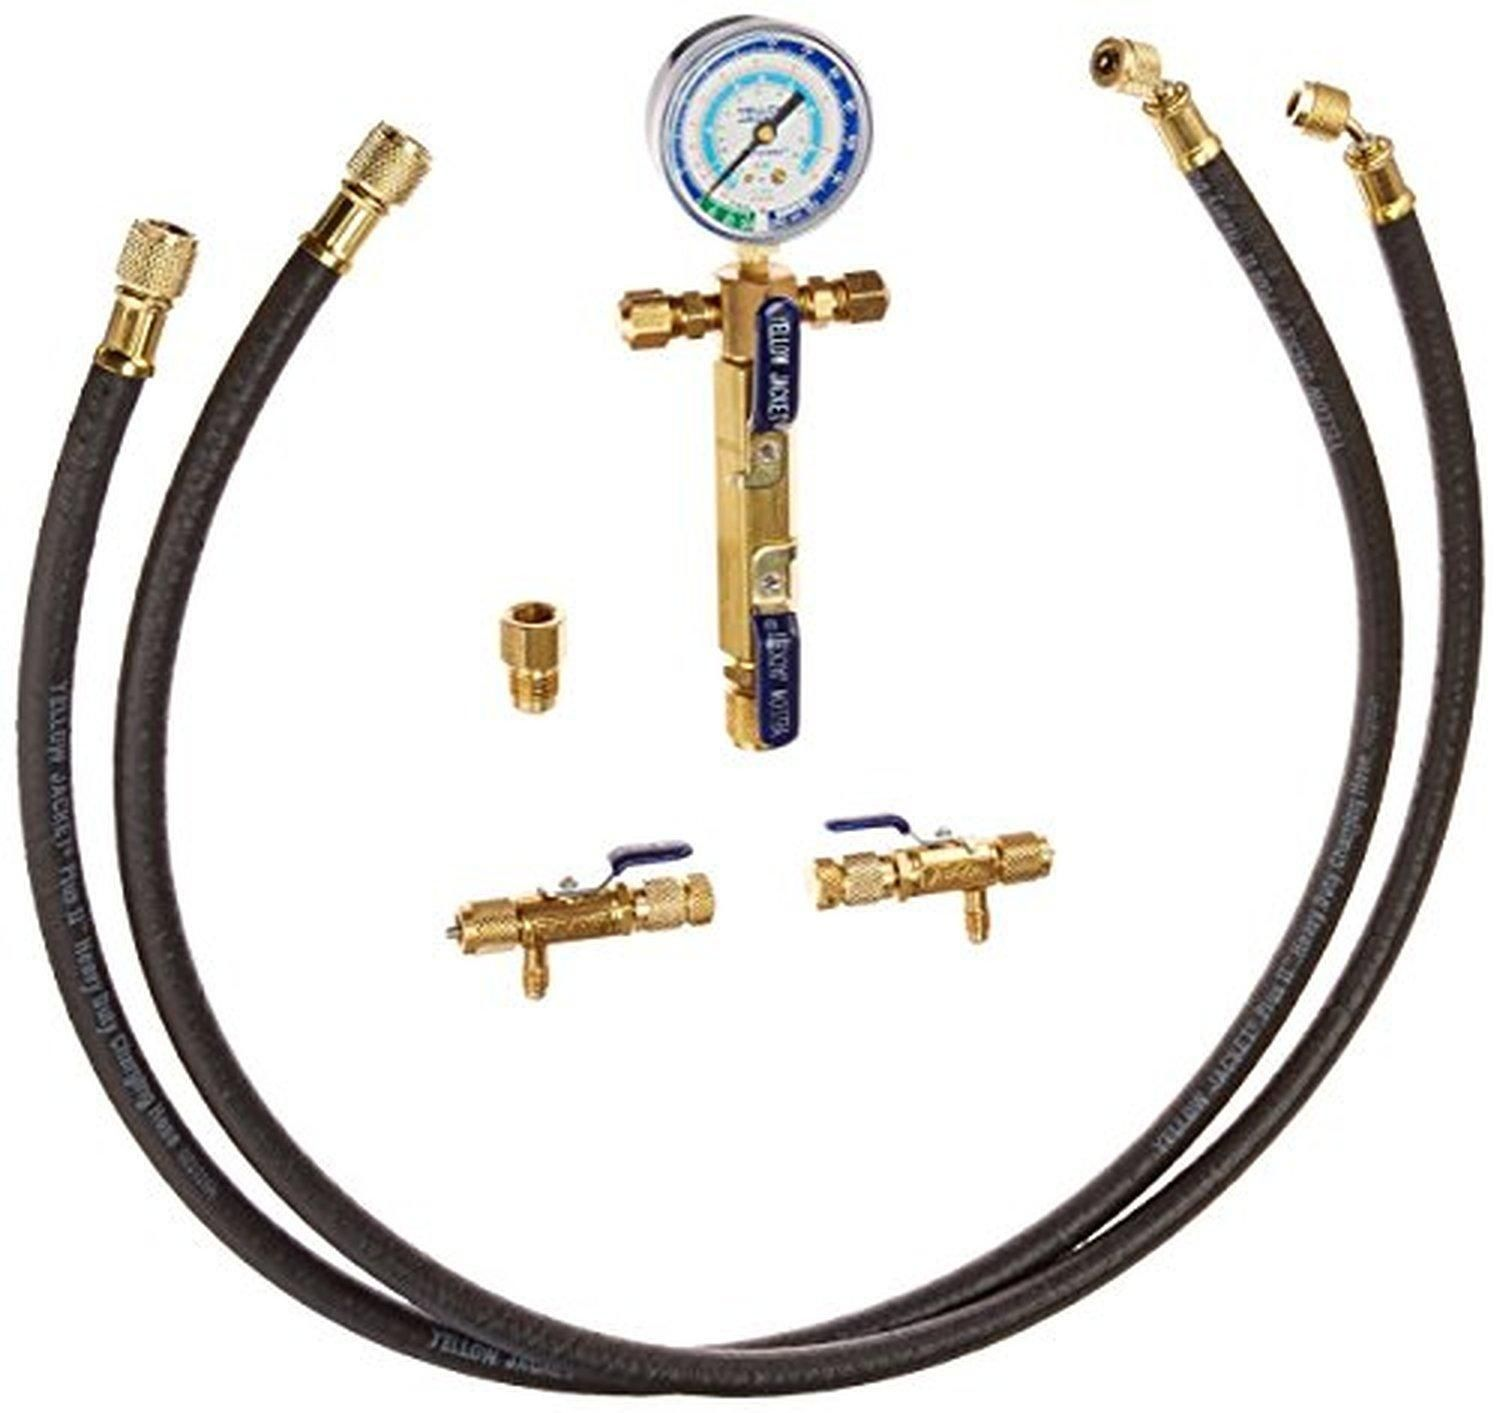 "Yellow Jacket 93865 1/2"" Evacuation System I 2 Valve Manifold, 2 16248 48"" Vacuum Hoses, 2 Valves - Brought to you by Avarsha.com"